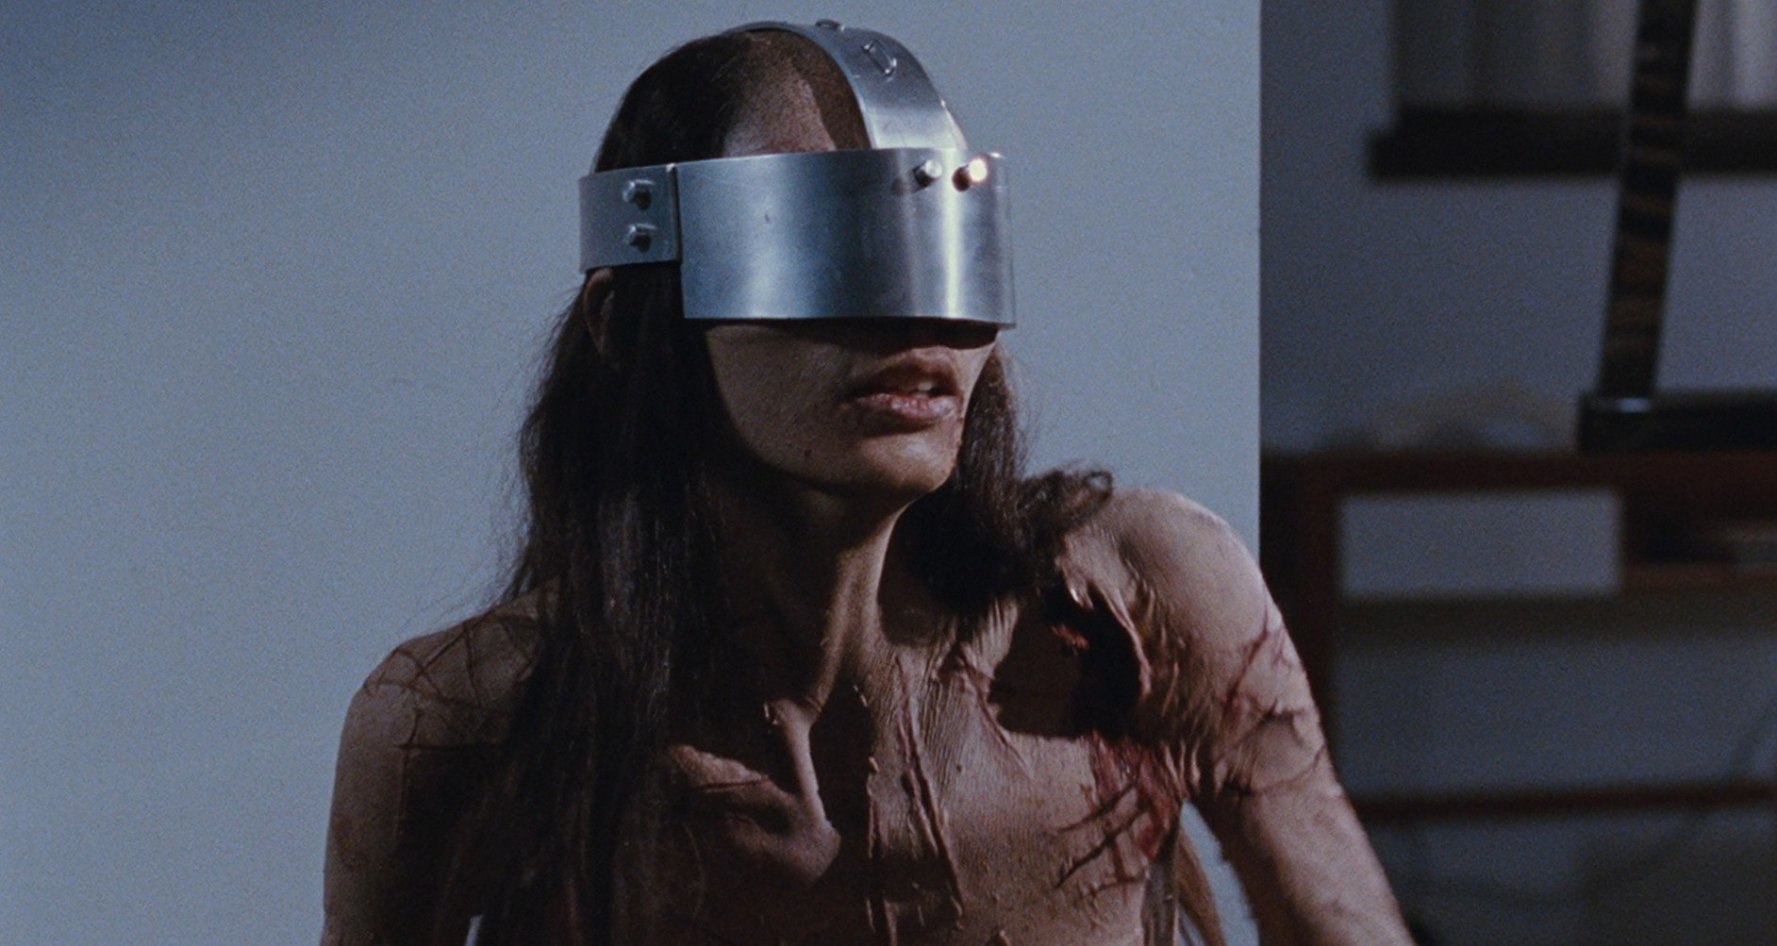 Sight Unseen: 10 Great Horror Movies Best Experienced By Going in Blind